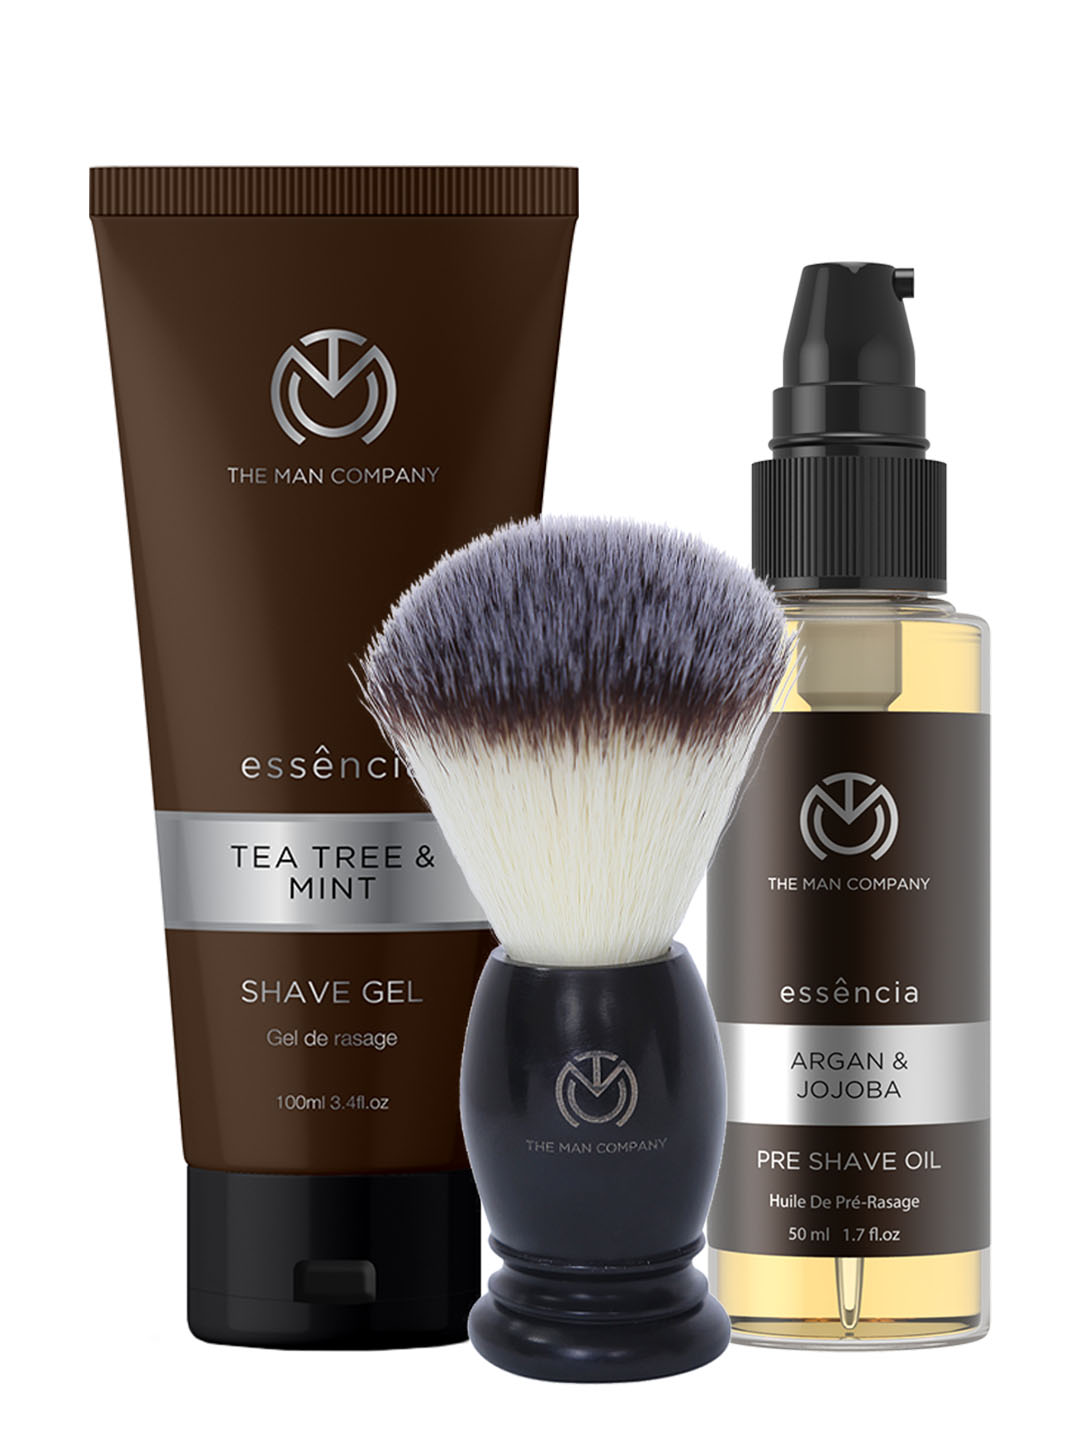 The Man Company's Skim Set - A Must Have Daily Shaving Stack